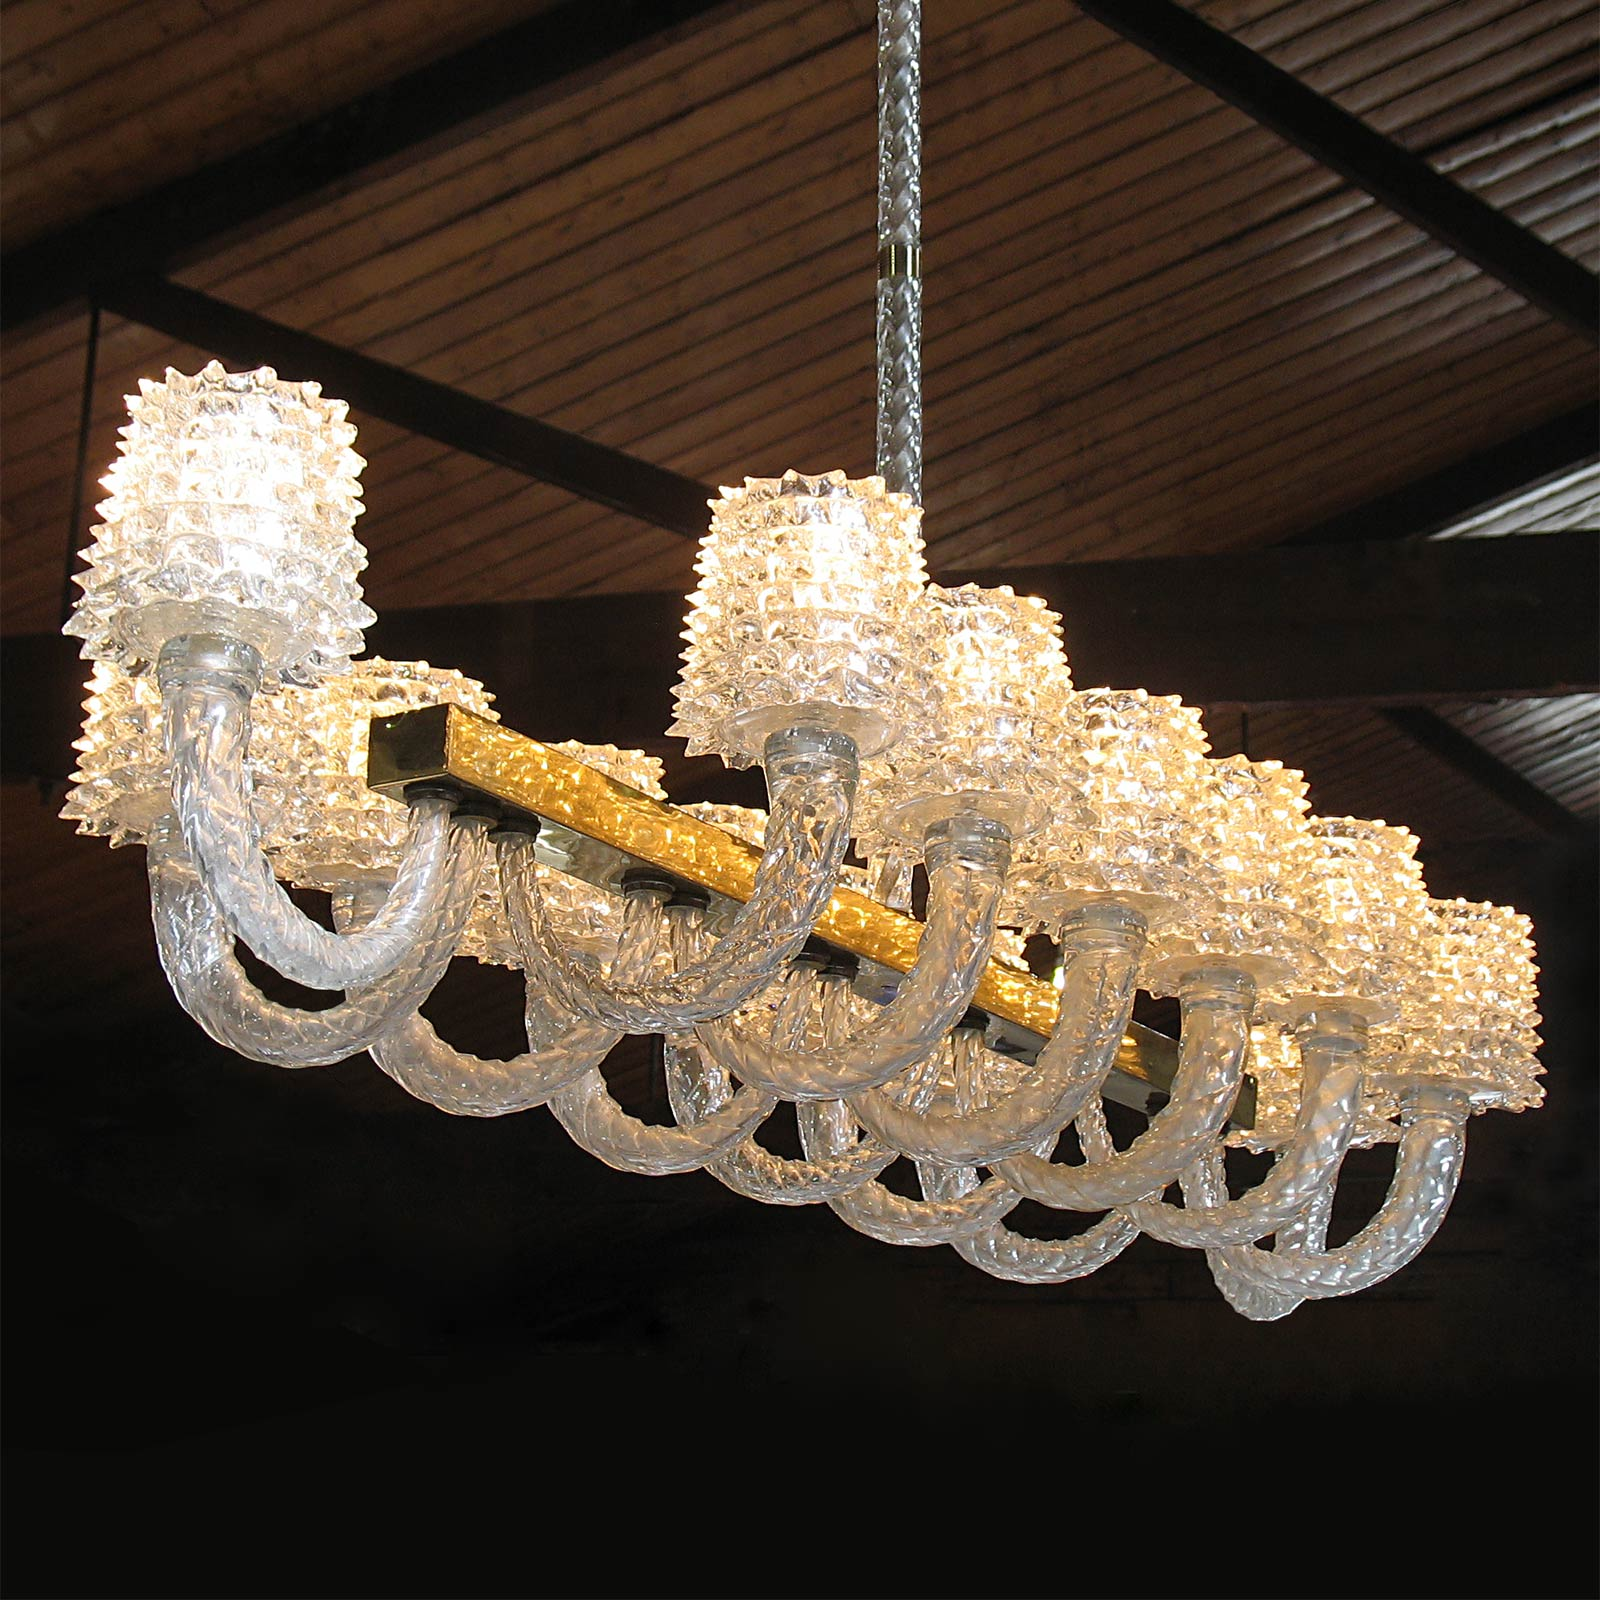 Barovier Rostrato Chandelier Large 1